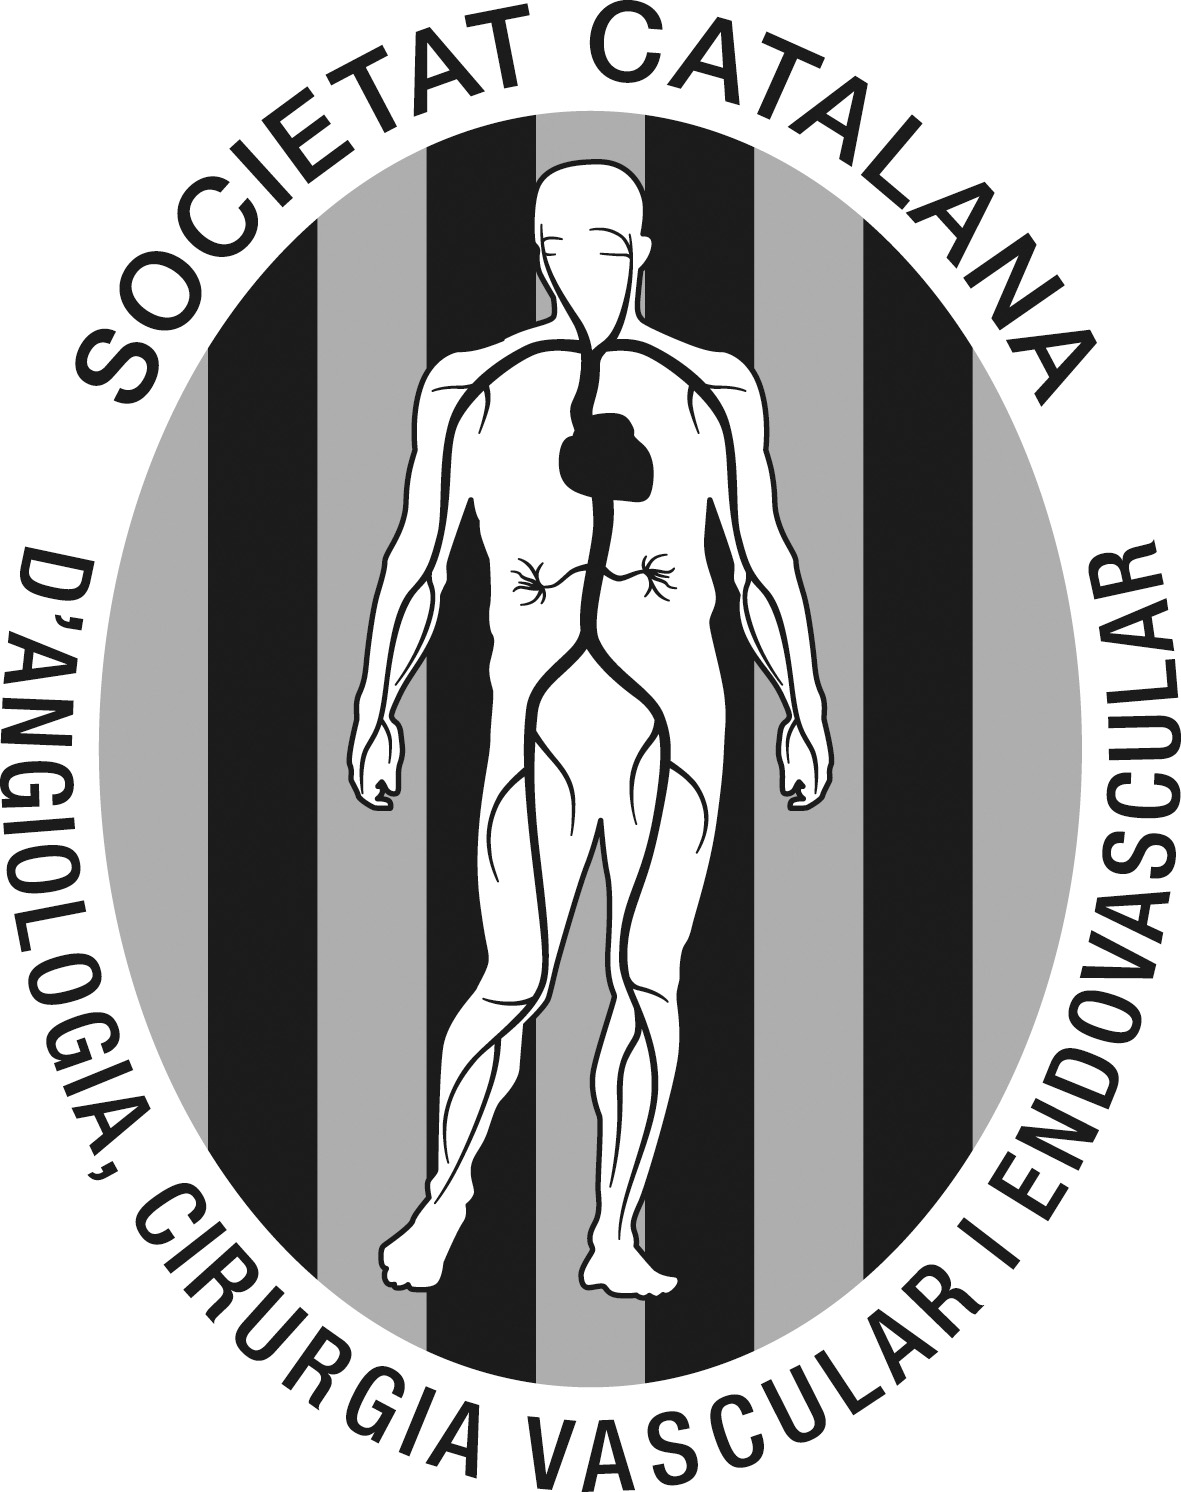 National Congress Societat Catalana d'Angiologia, Cirurgia Vascular i Endovascular - International Meeting